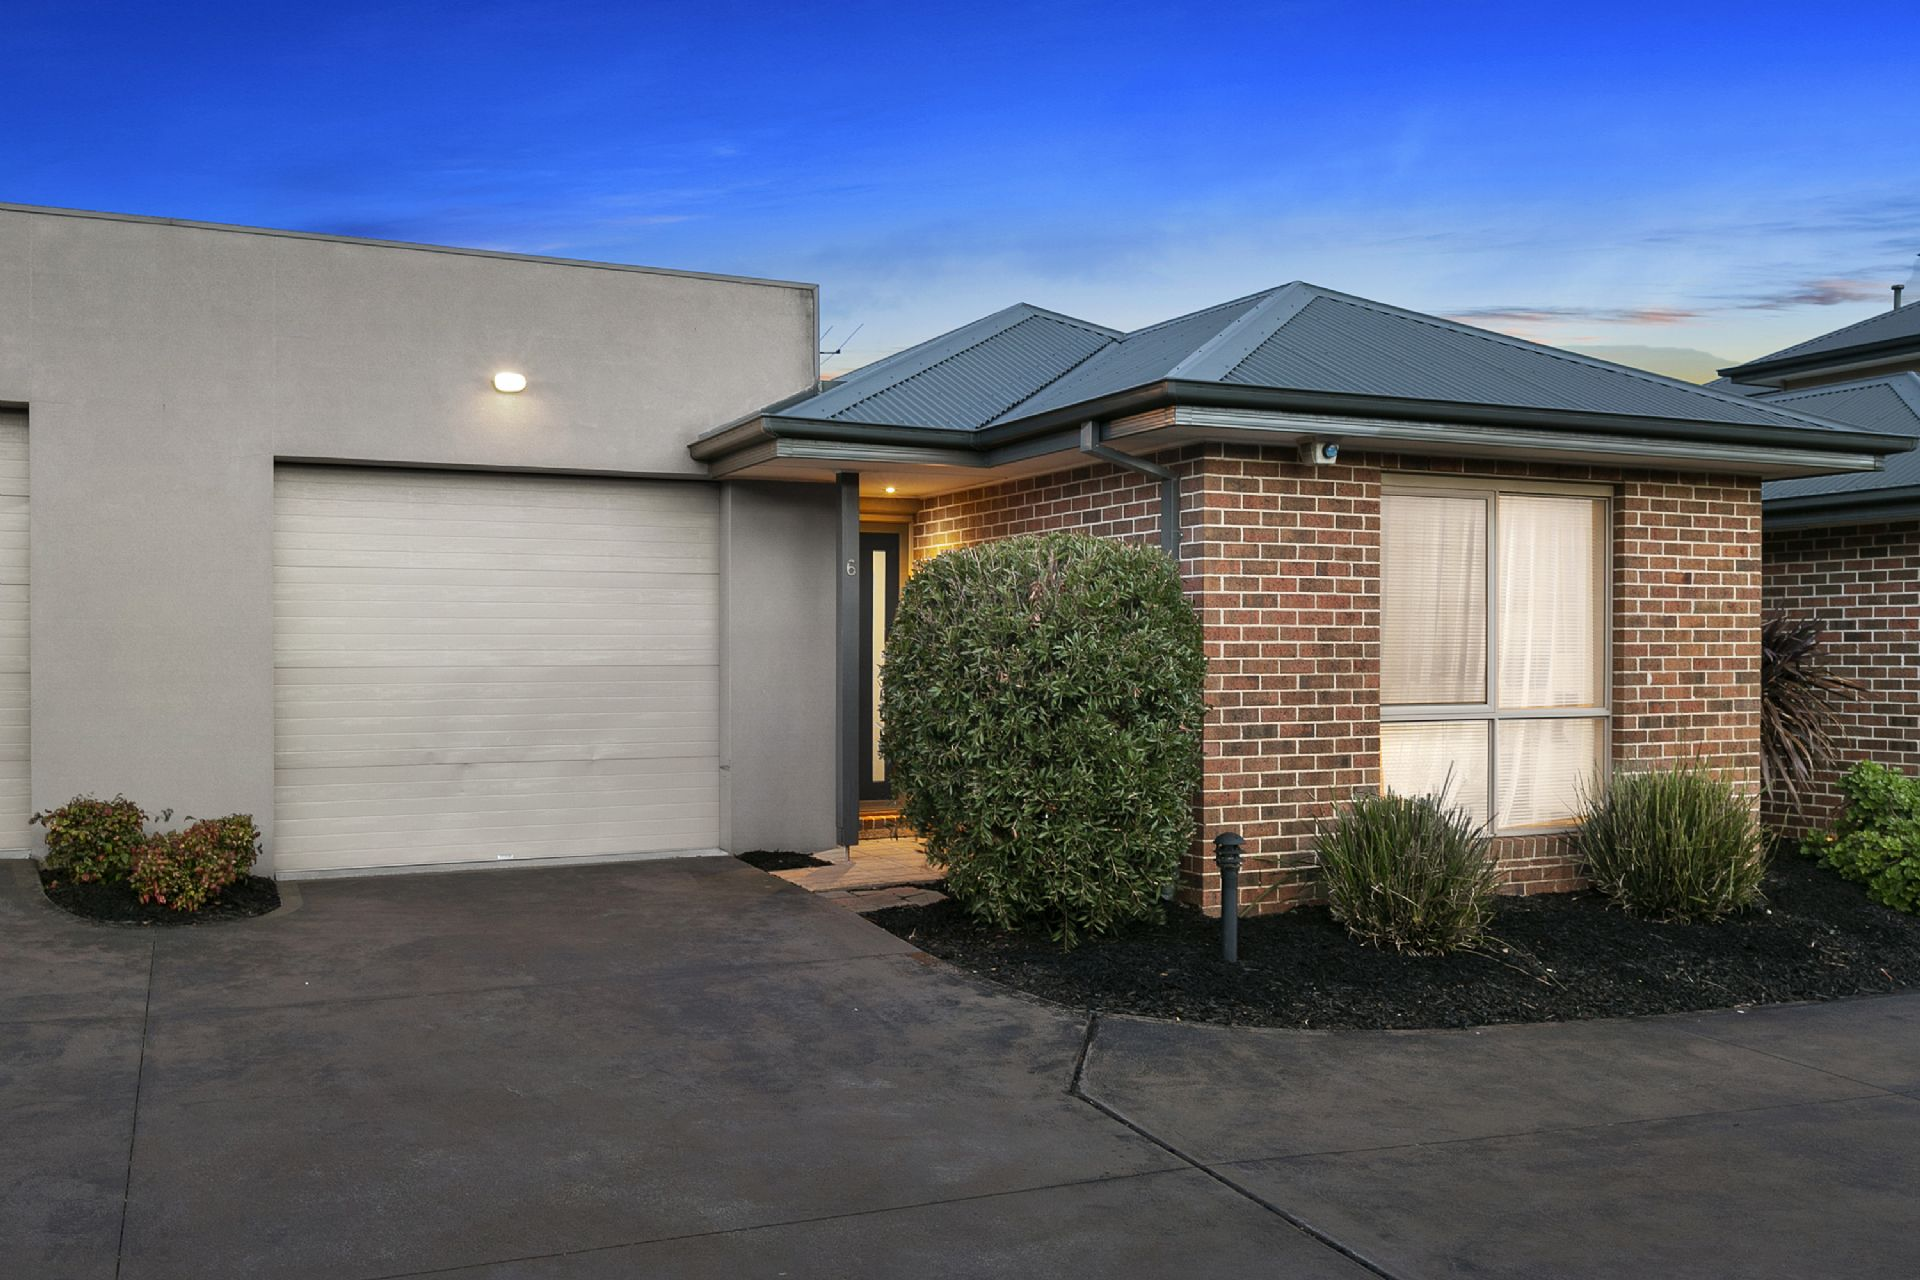 6/167 Bentons Road, MORNINGTON, VIC, 3931 - Image